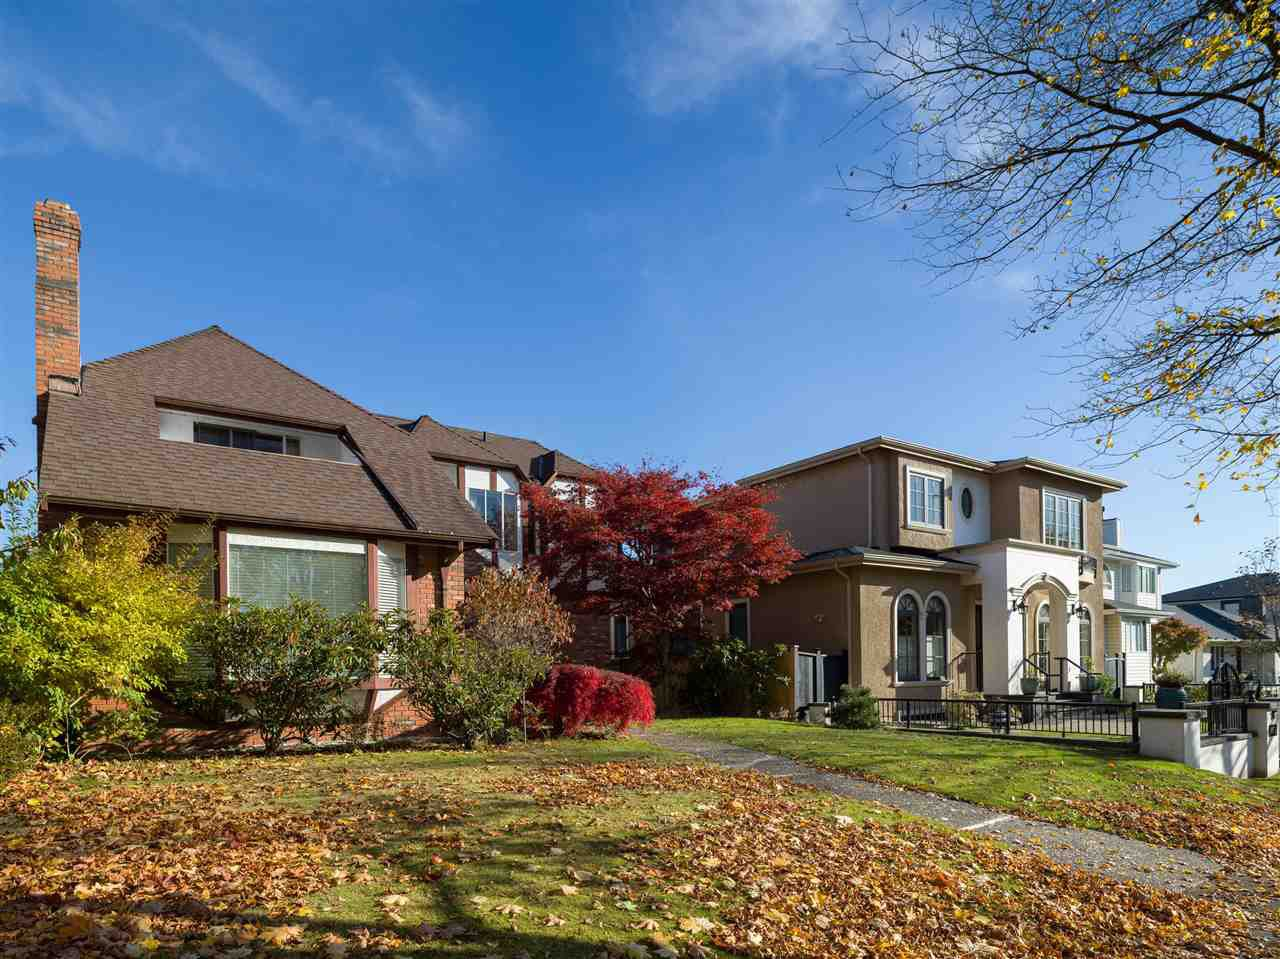 Main Photo: 5564 ELIZABETH Street in Vancouver: Cambie House for sale (Vancouver West)  : MLS®# R2518667